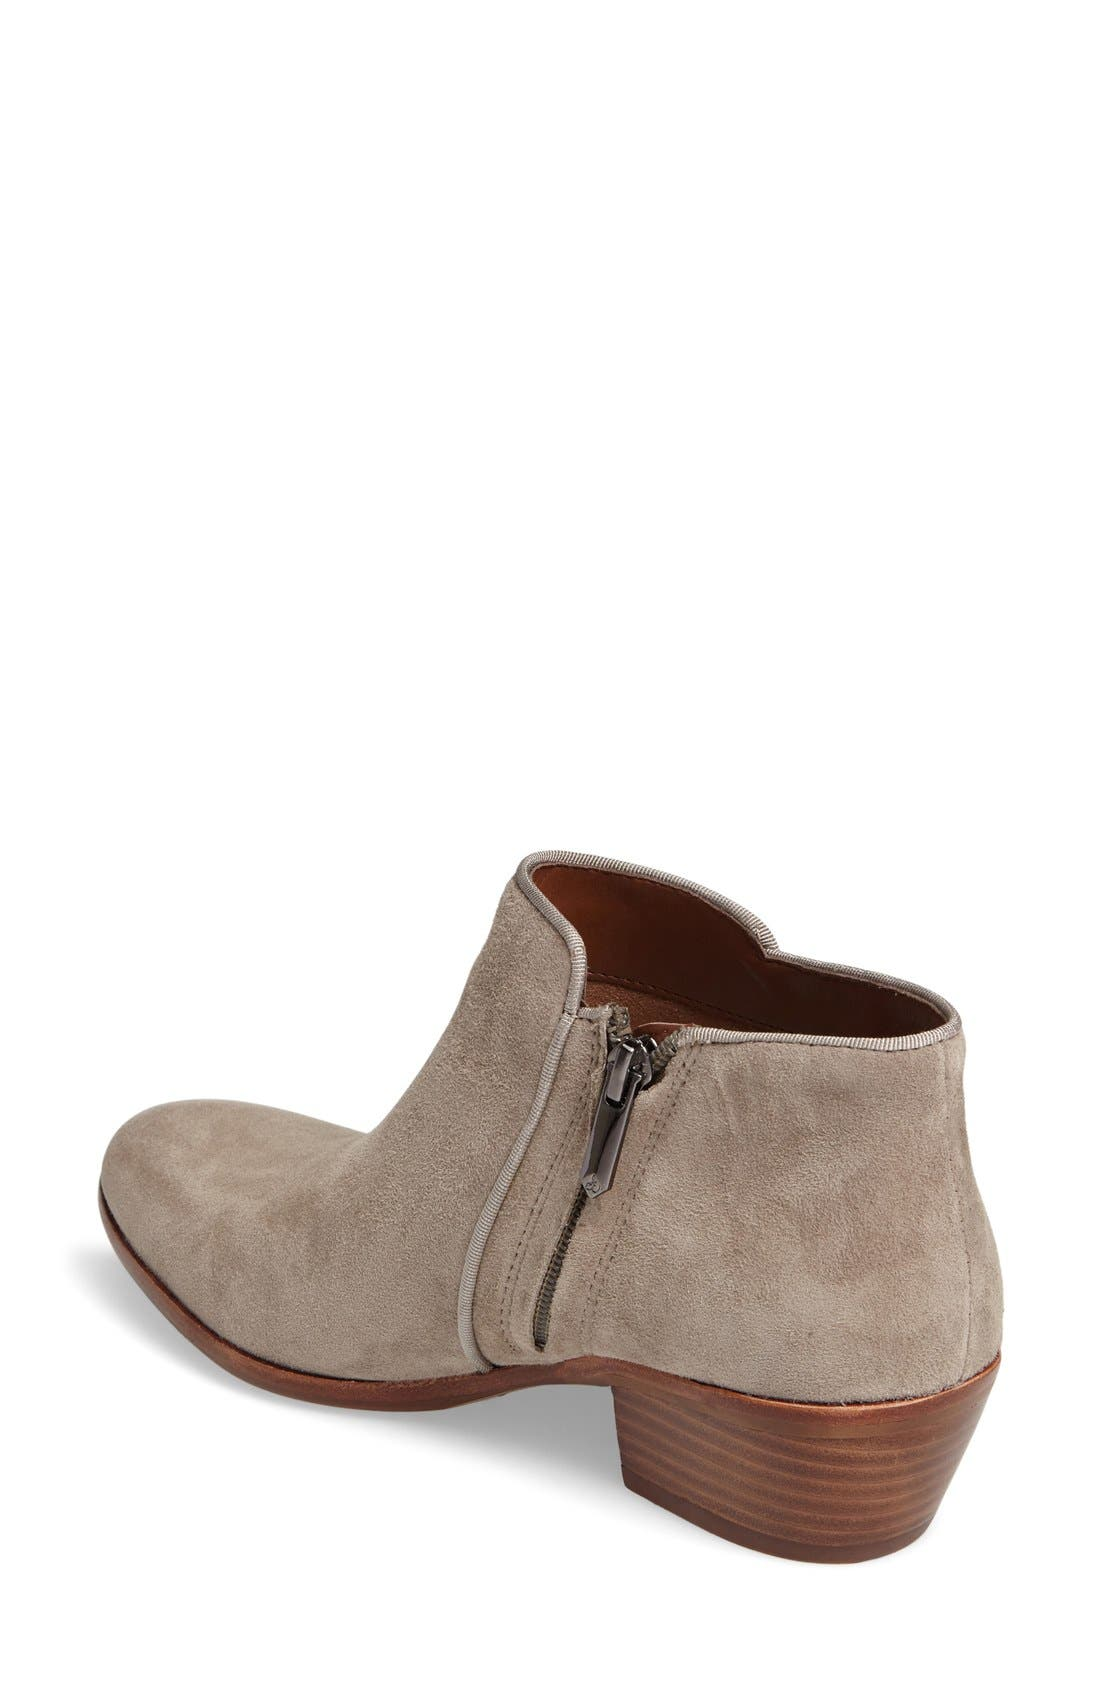 Alternate Image 3  - Sam Edelman 'Petty' Chelsea Boot (Women)